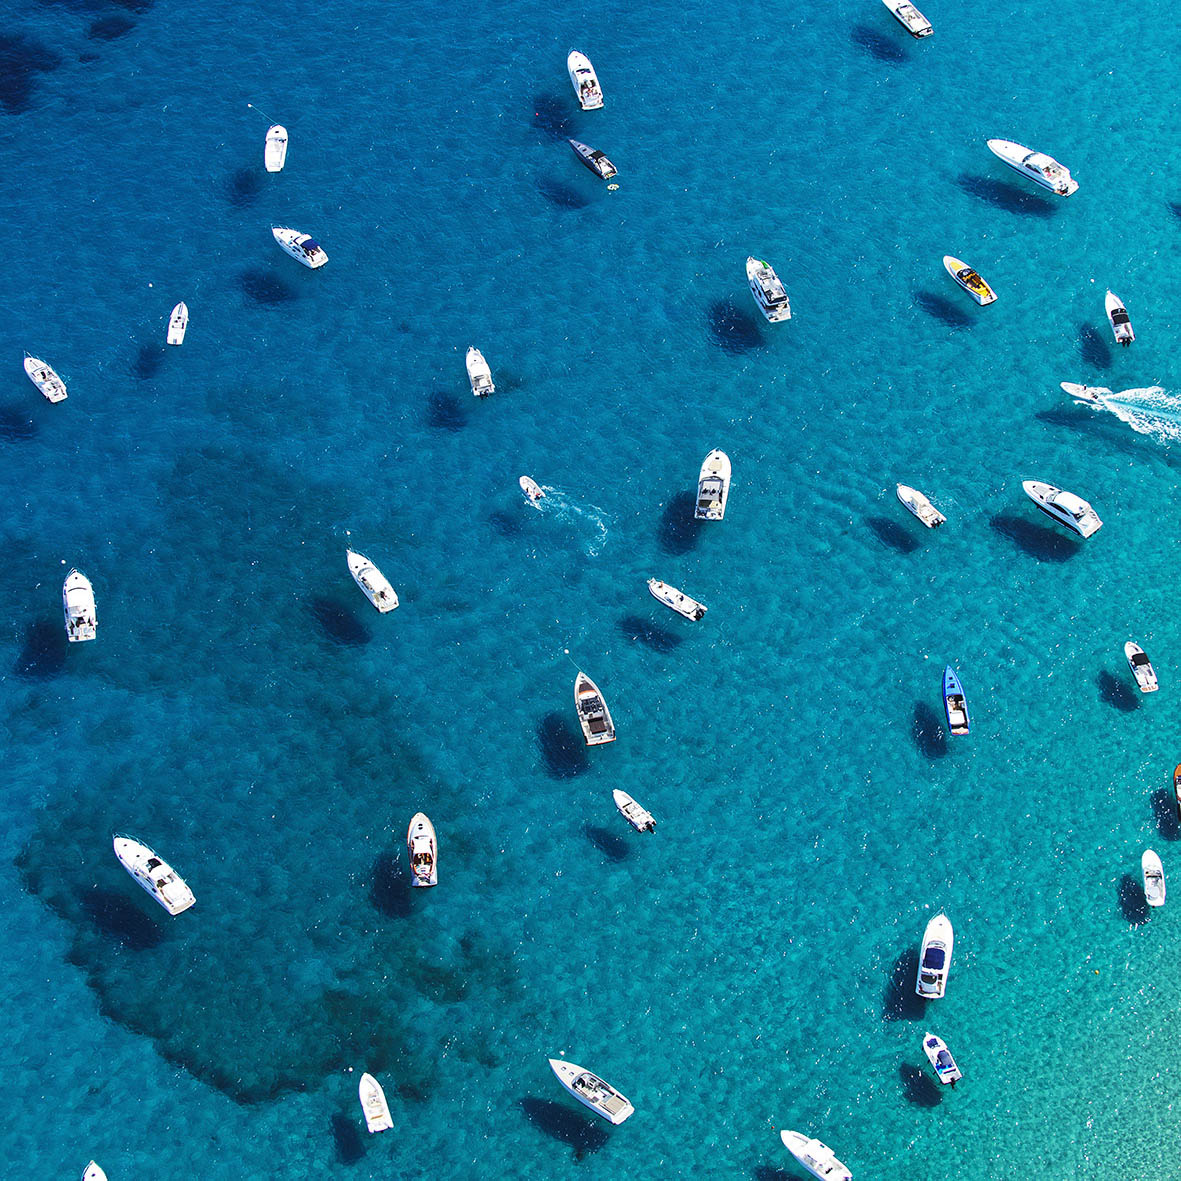 boats in the water luxury blue